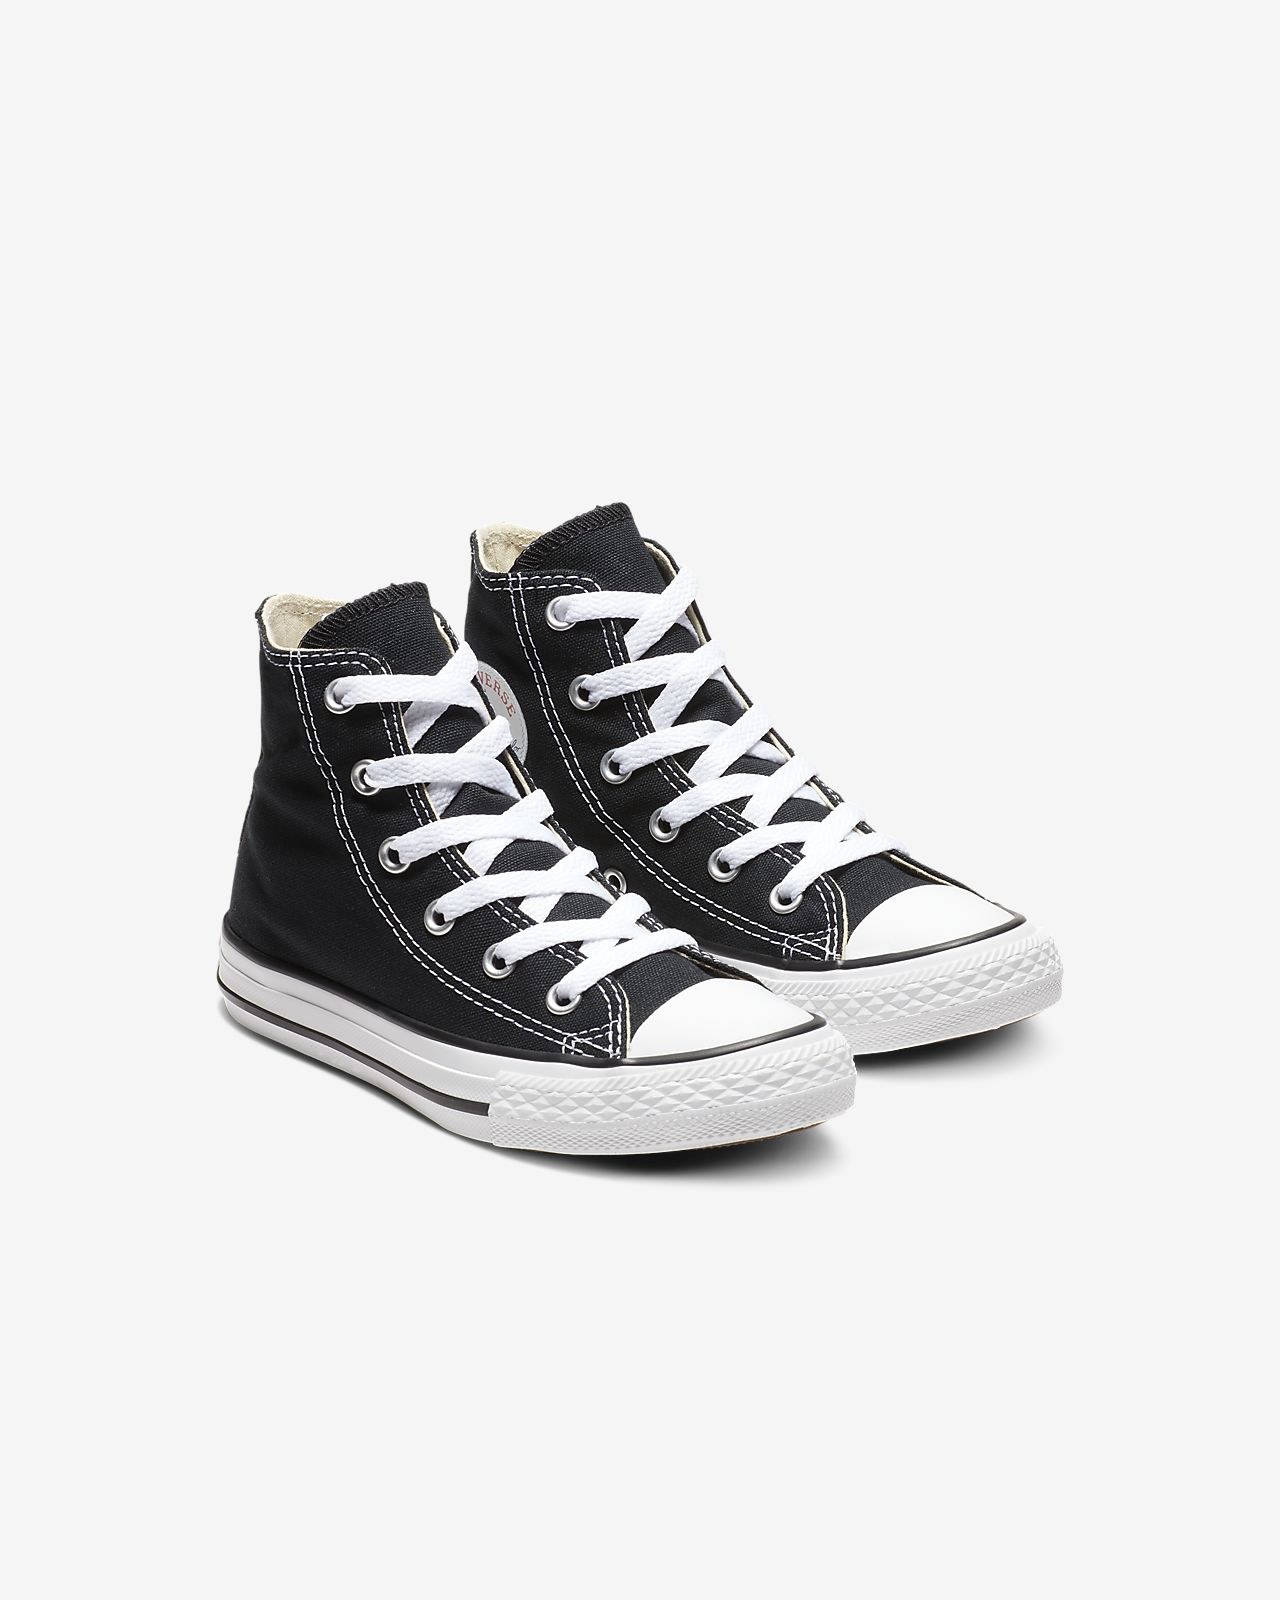 b90a283eaa Converse Chuck Taylor All Star High Top Little Kids' Shoe